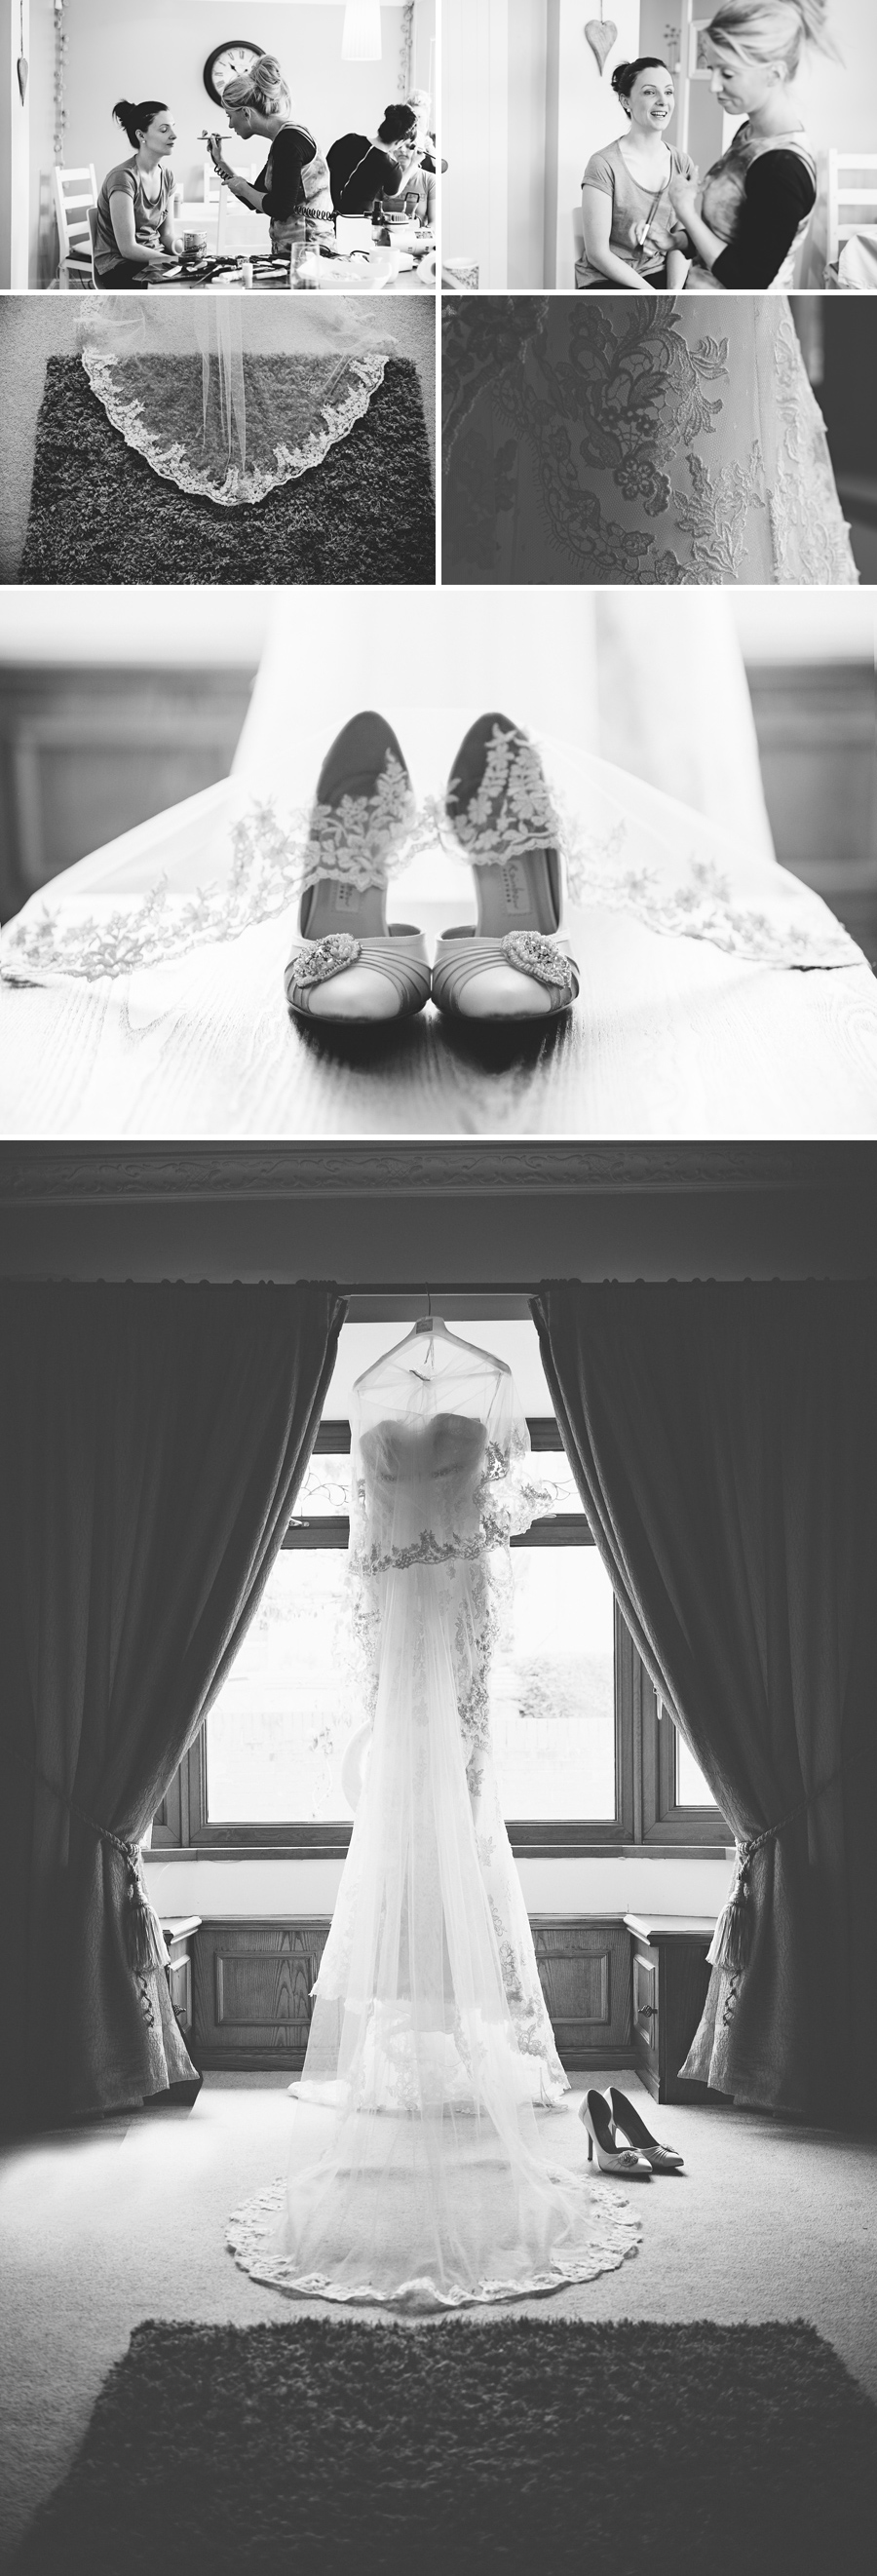 LOndon-wedding-photography-in-Wales